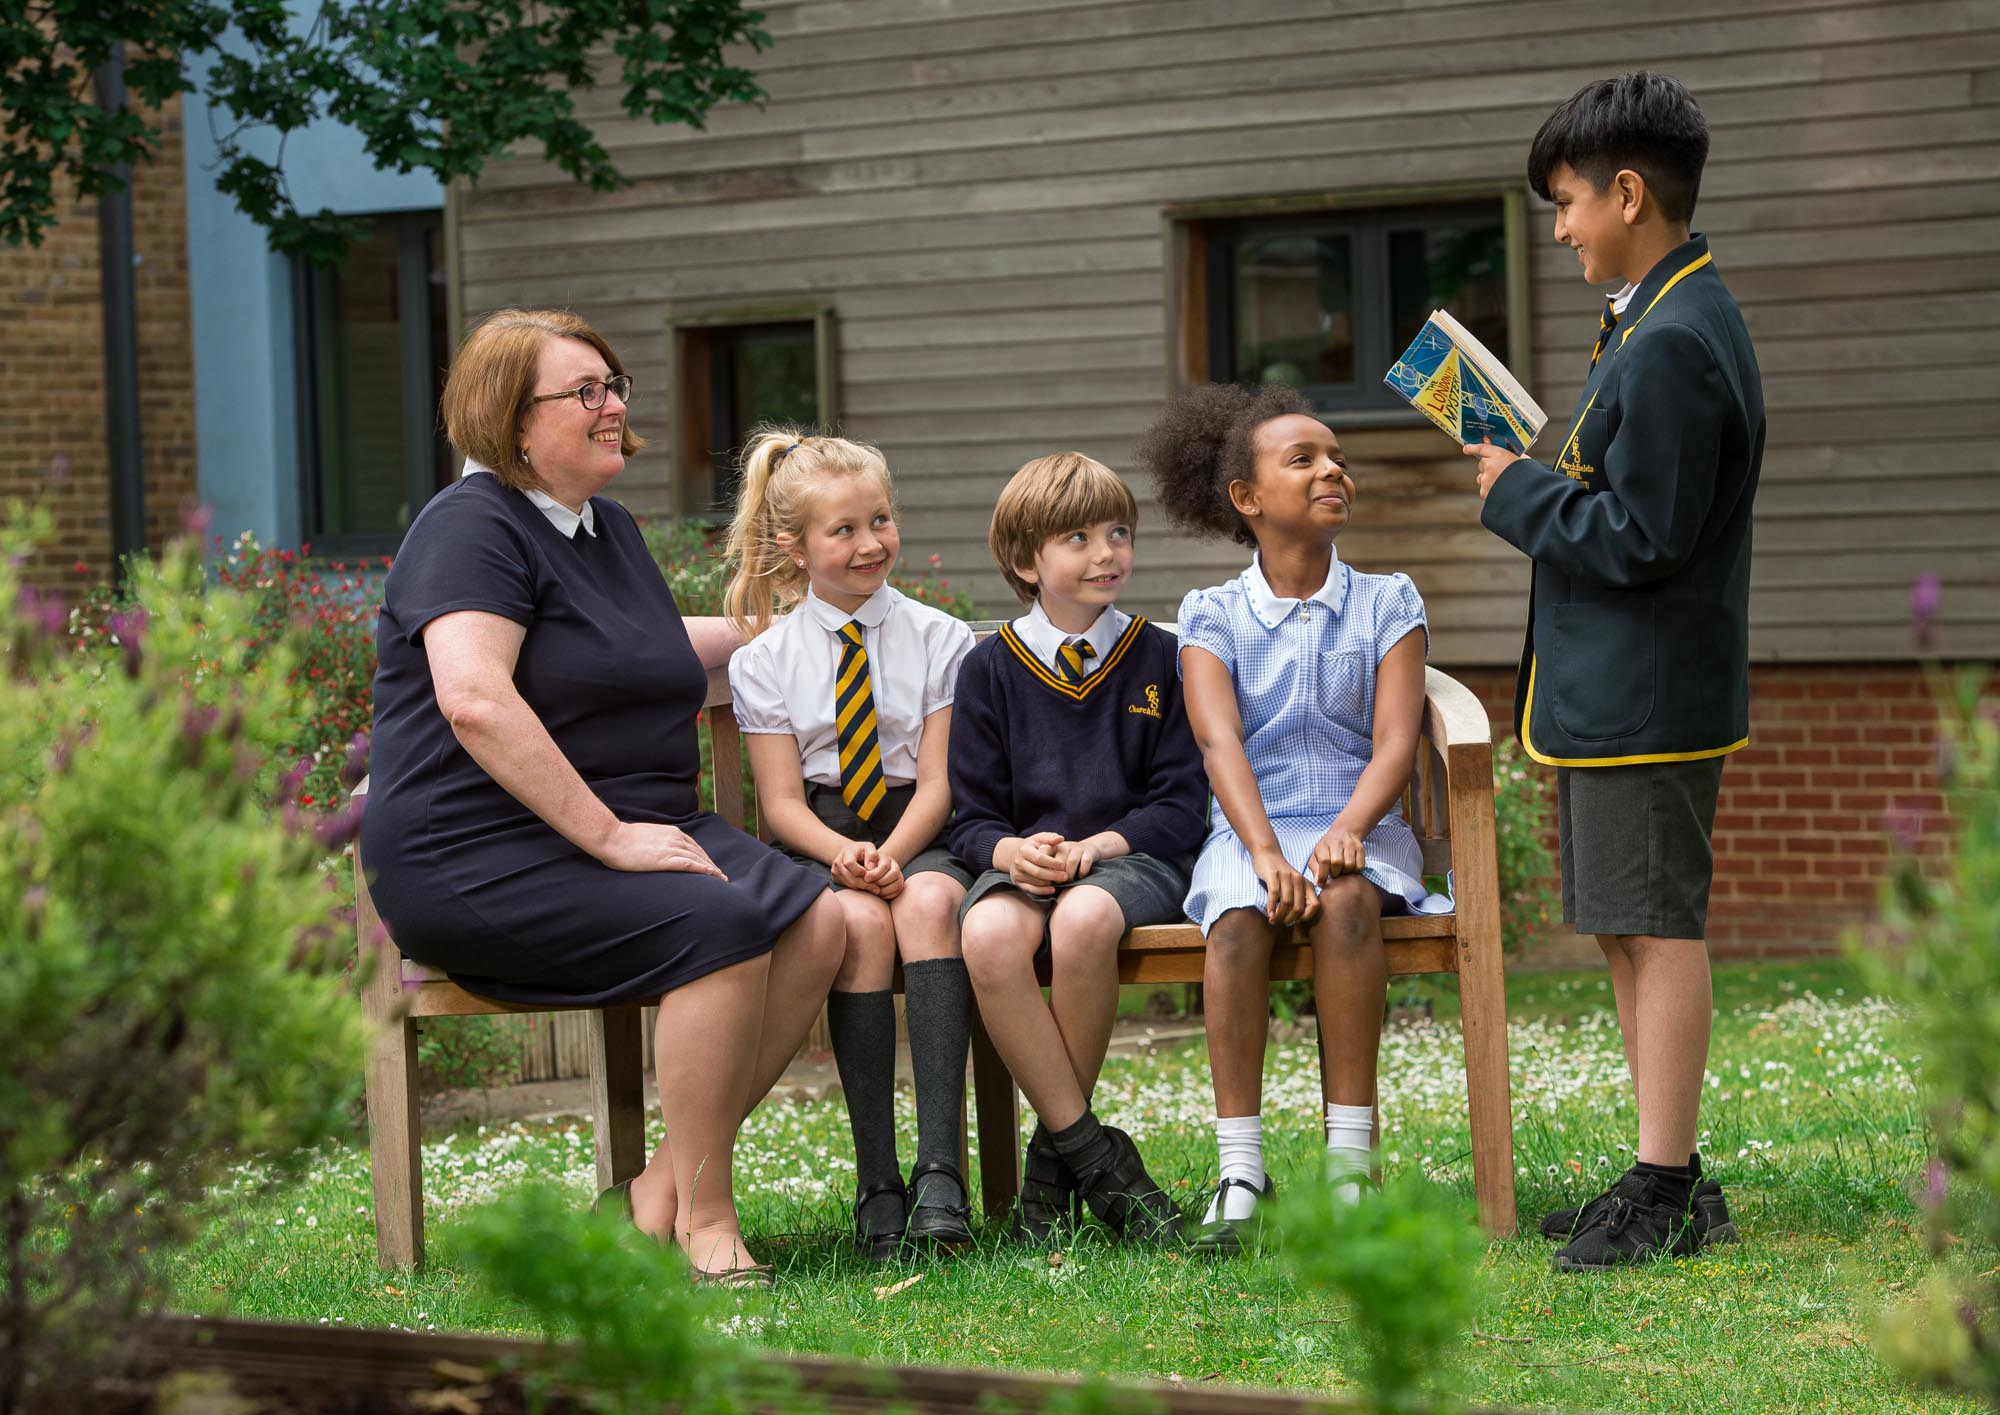 Head teacher and children on bench listening to boy reading book out load